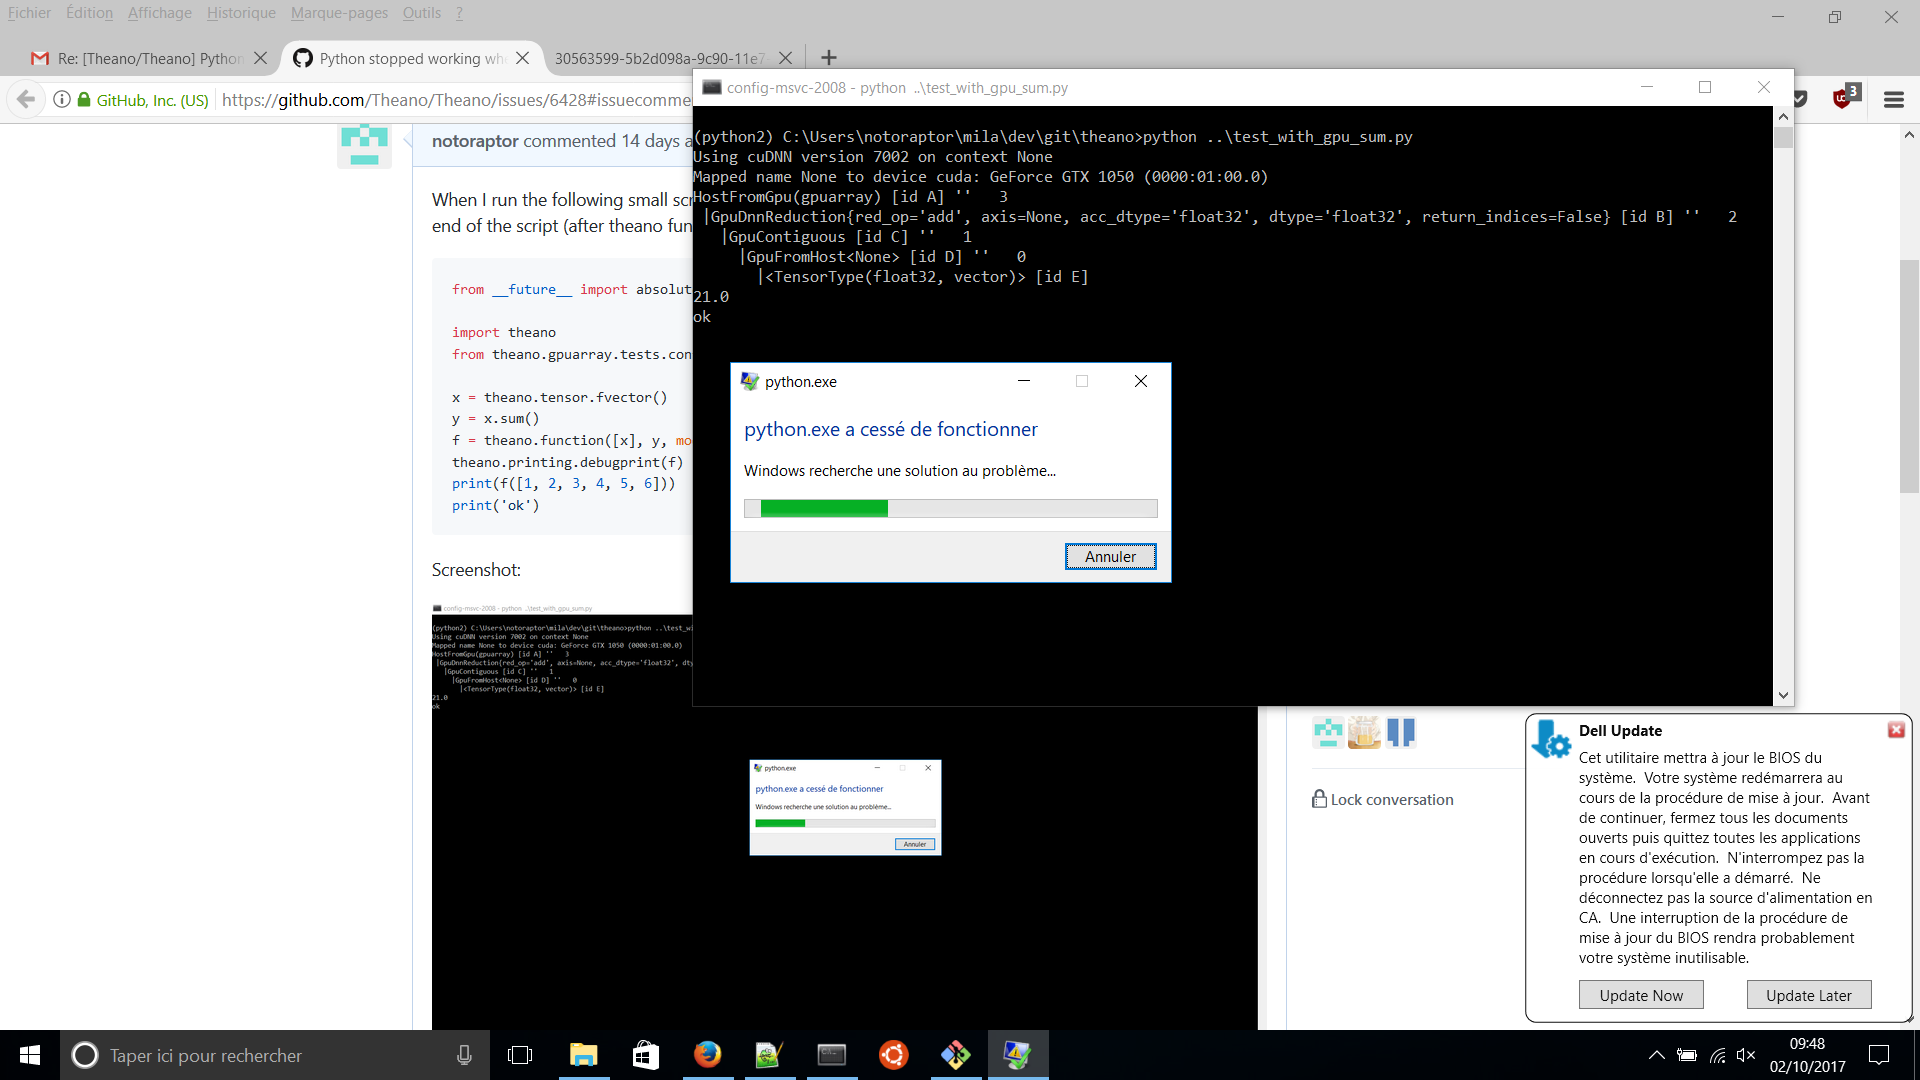 Python stopped working when using GPU on Windows · Issue